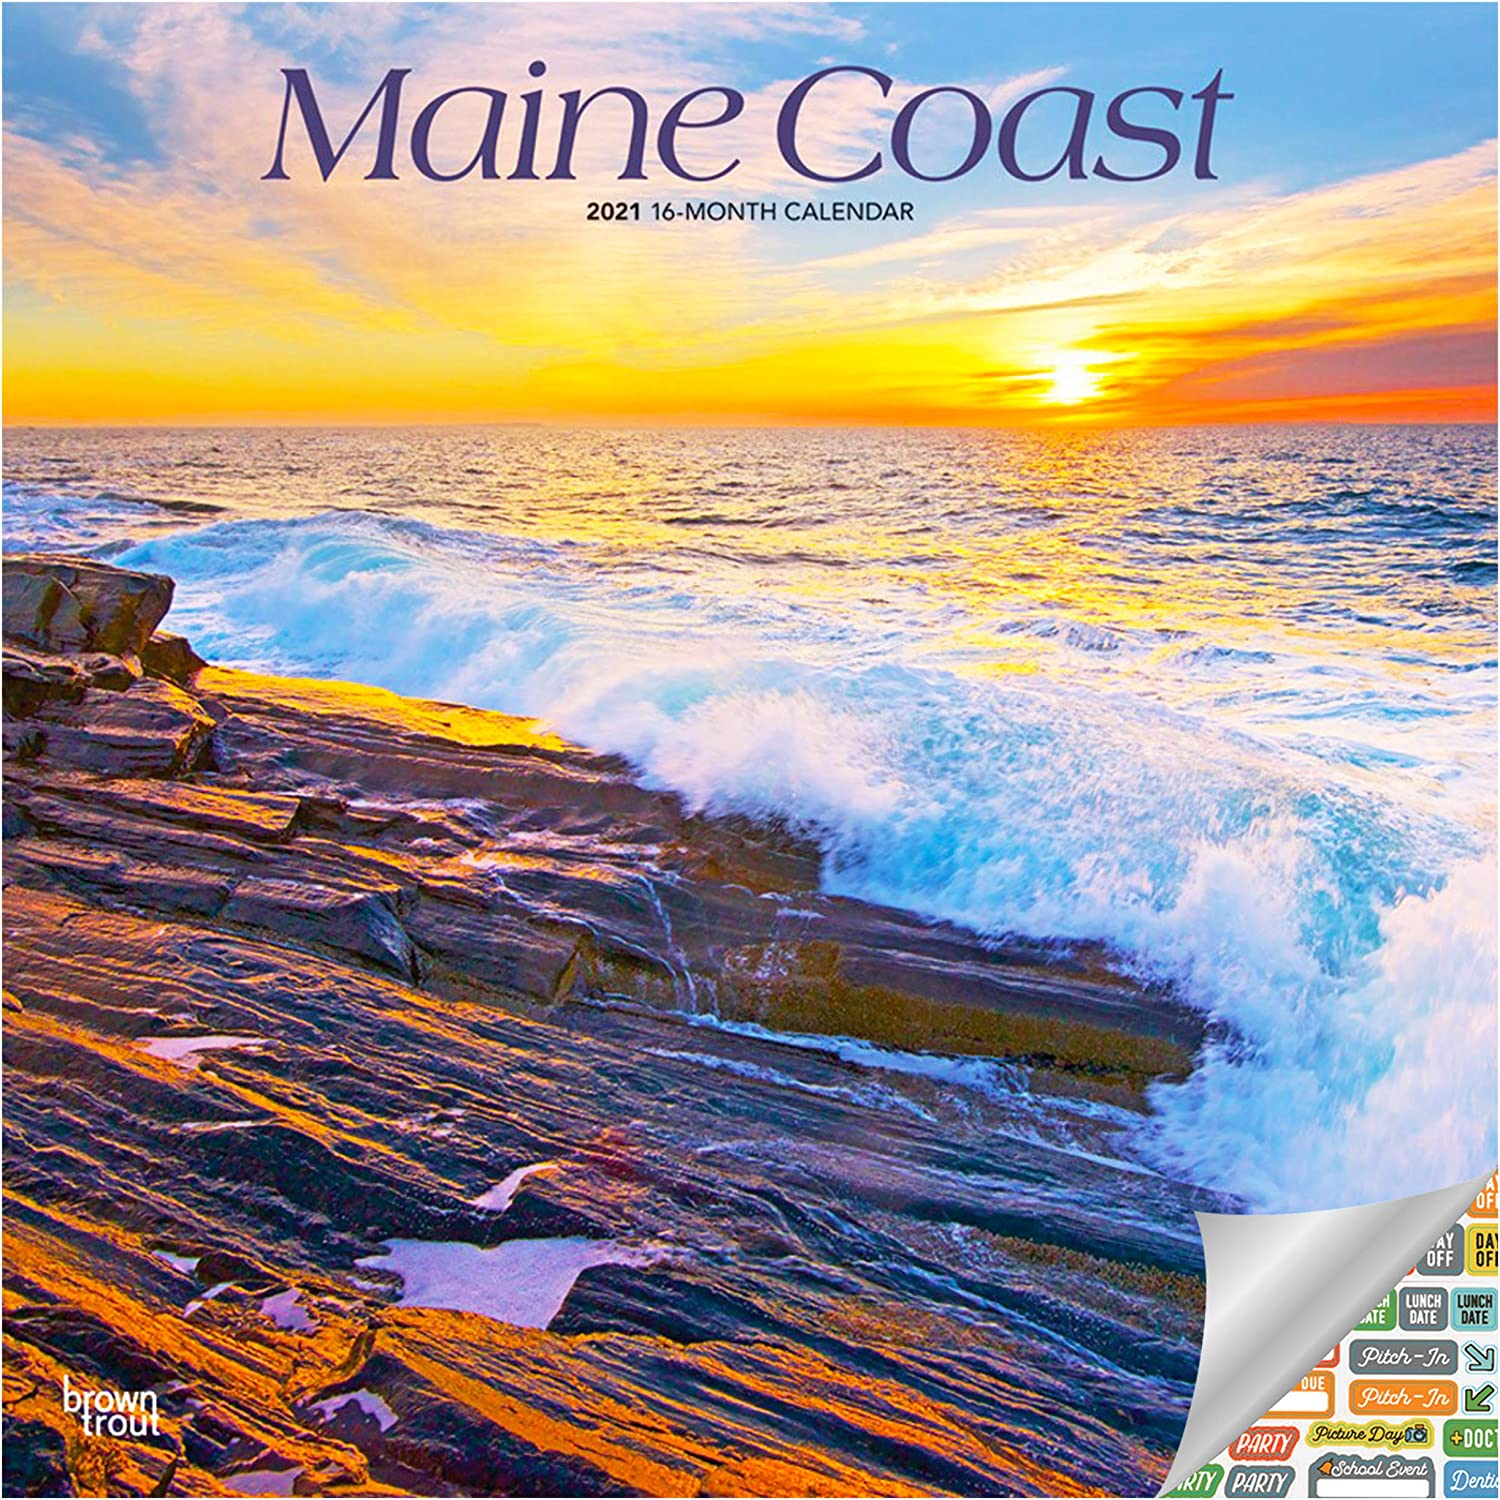 Maine Coast Calendar 2021 Bundle - Deluxe 2021 Maine Coast Wall Calendar with Over 100 Calendar Stickers (Nature Gifts, Office Supplies)